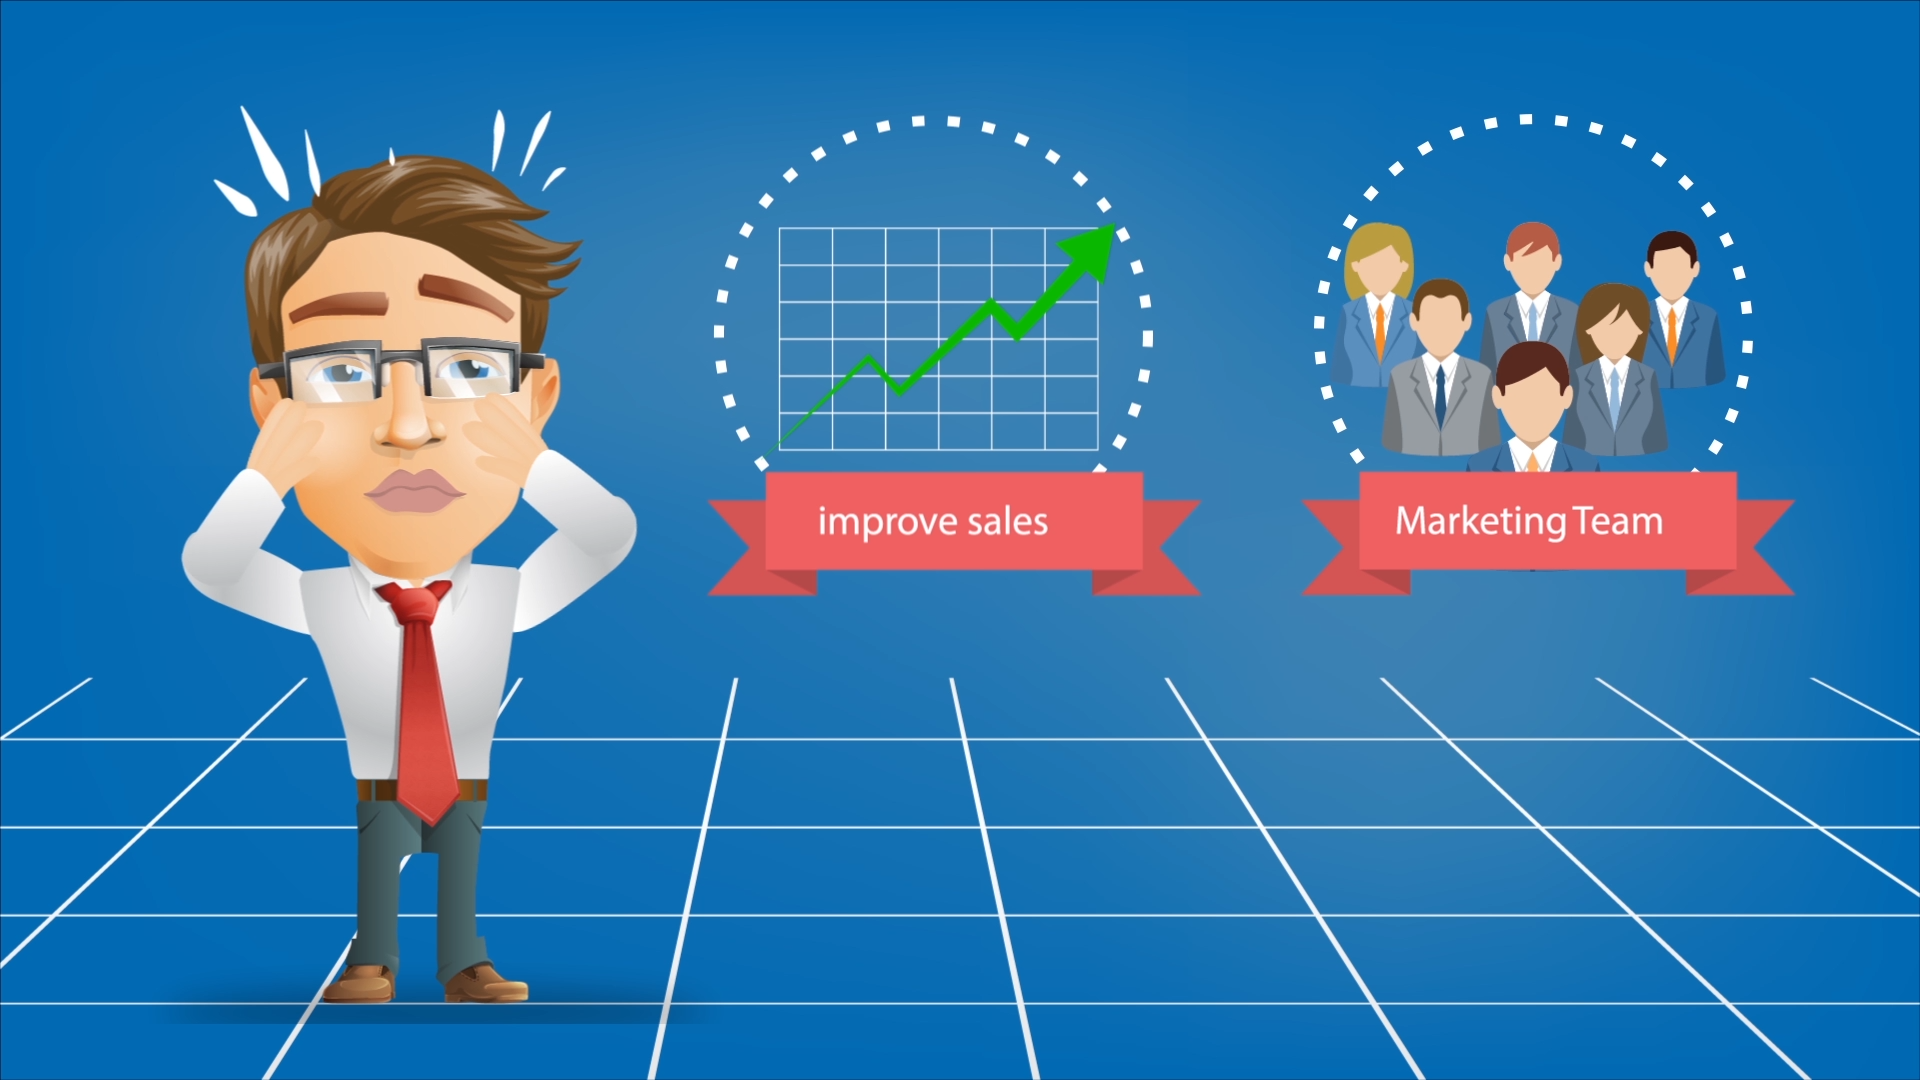 marketing-help-and-advice-from-marketing-team